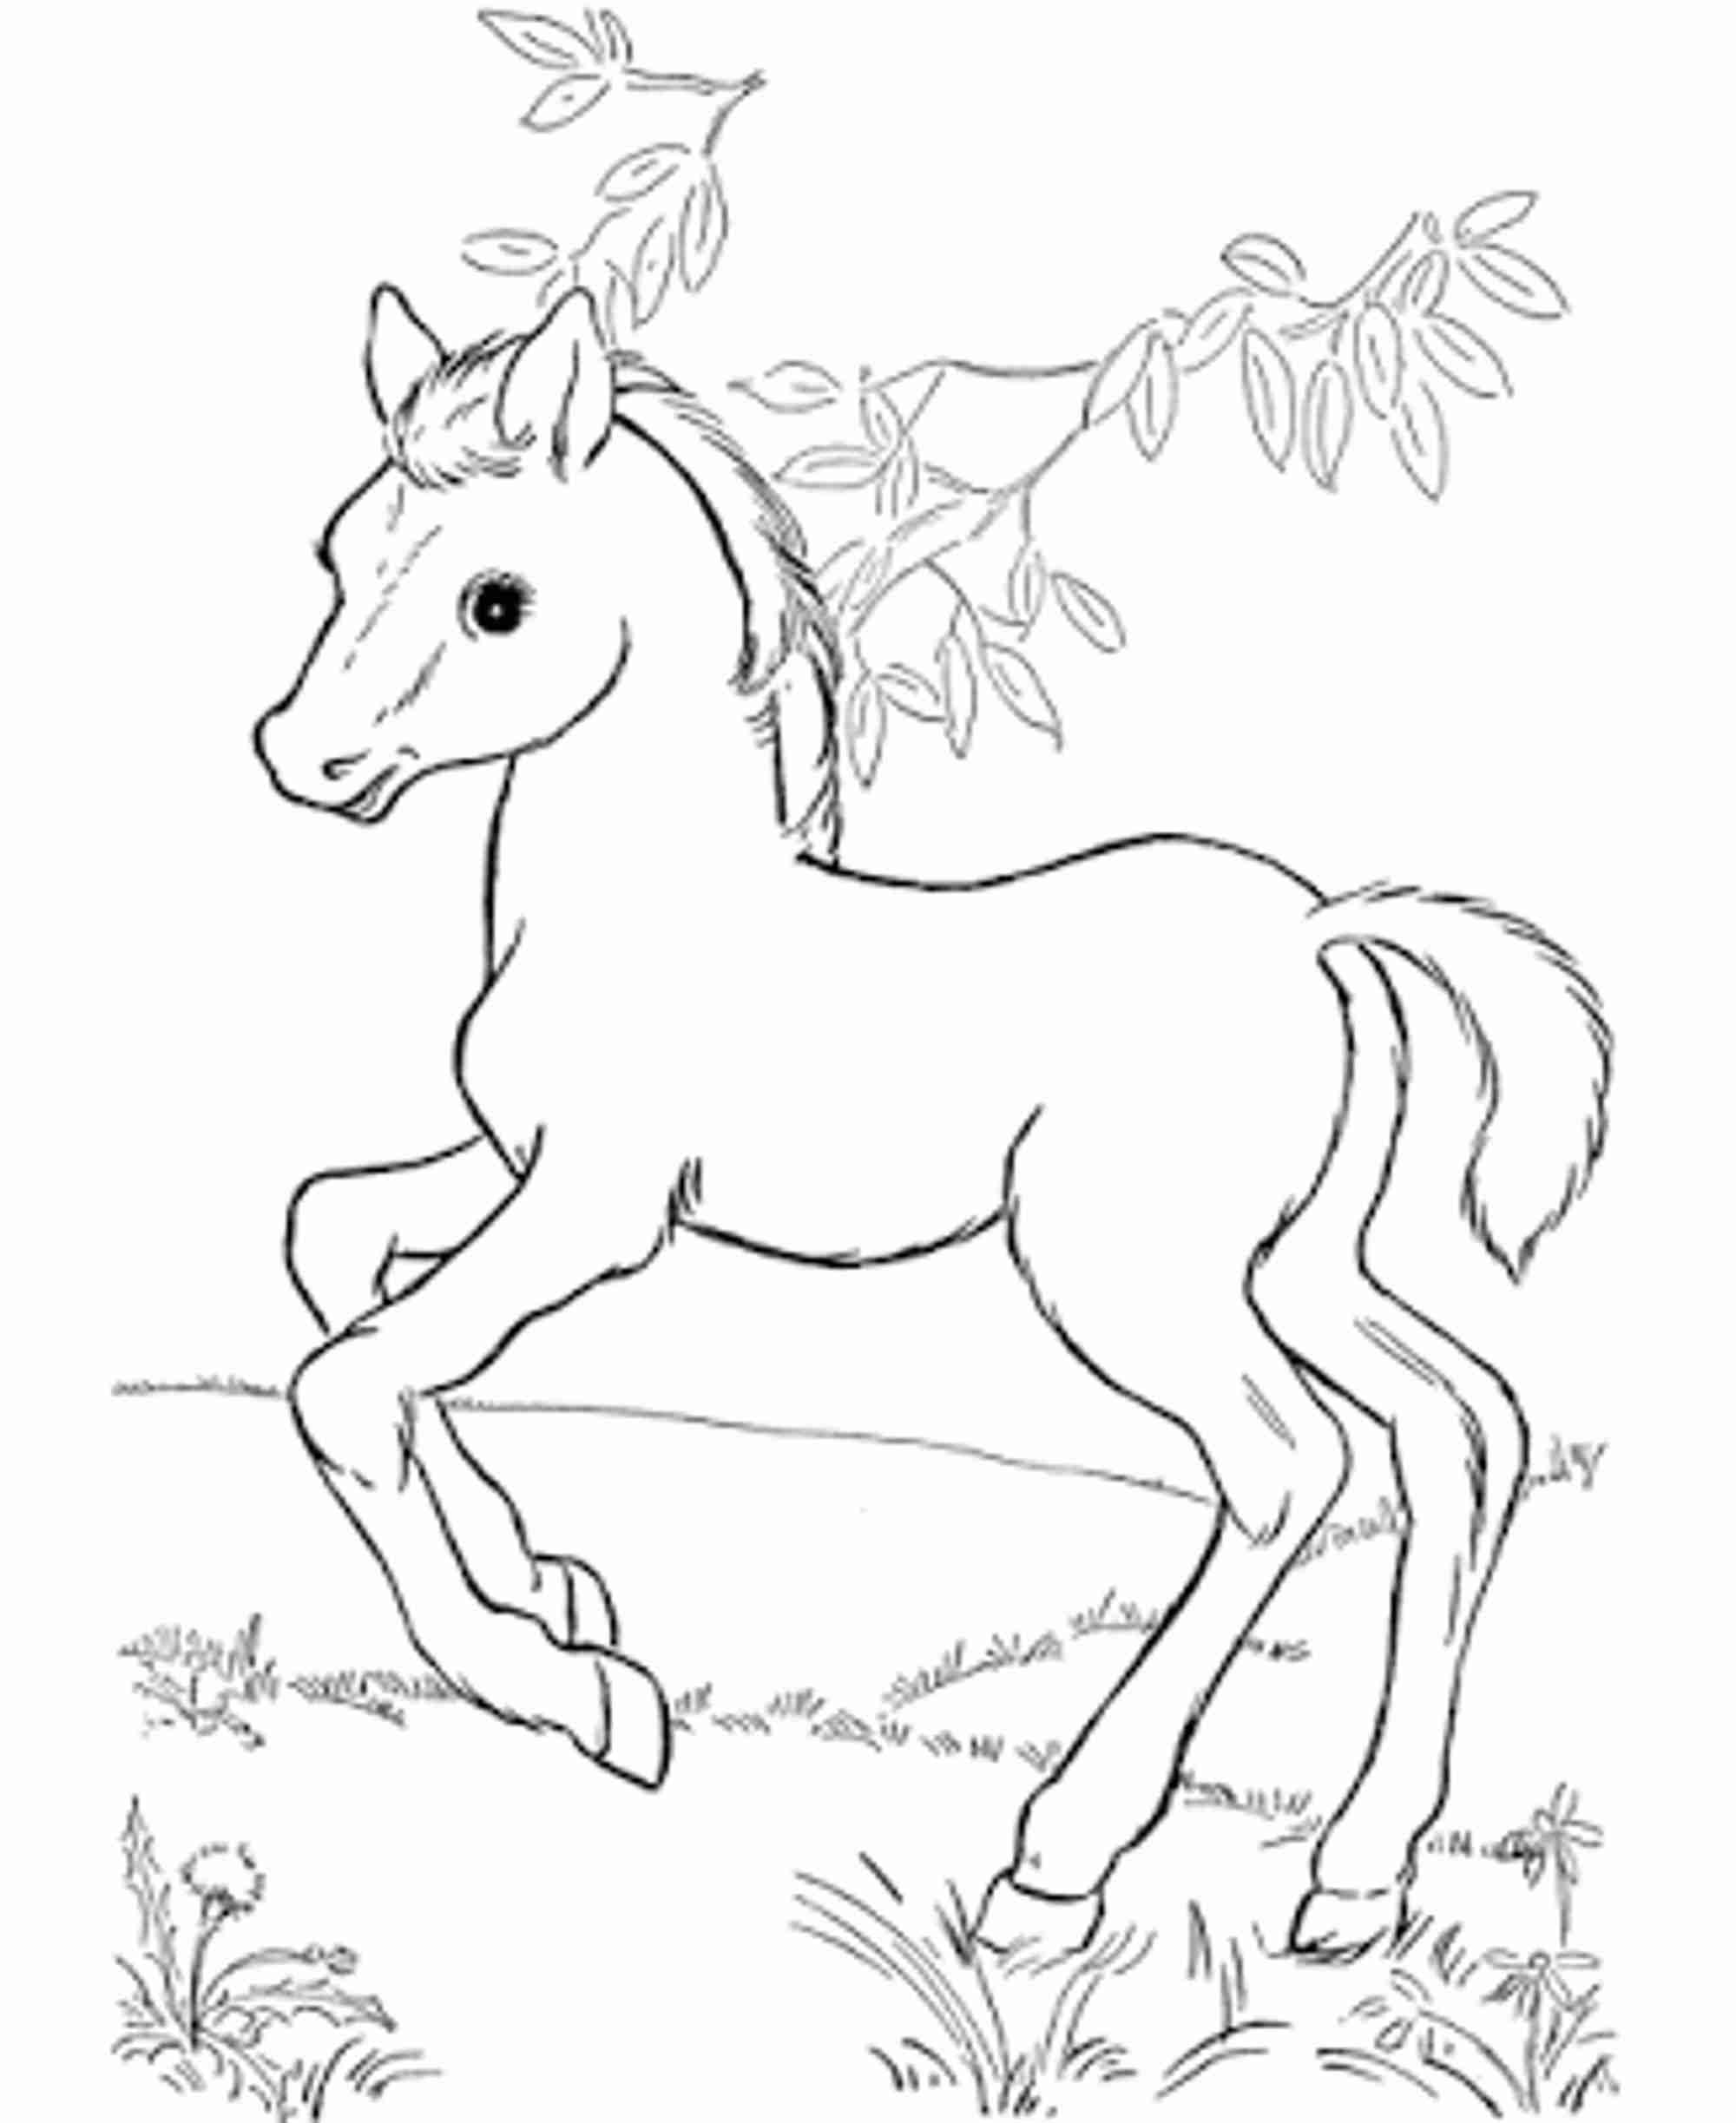 printable horse colouring pages horse coloring pages birthday printable horse printable colouring pages